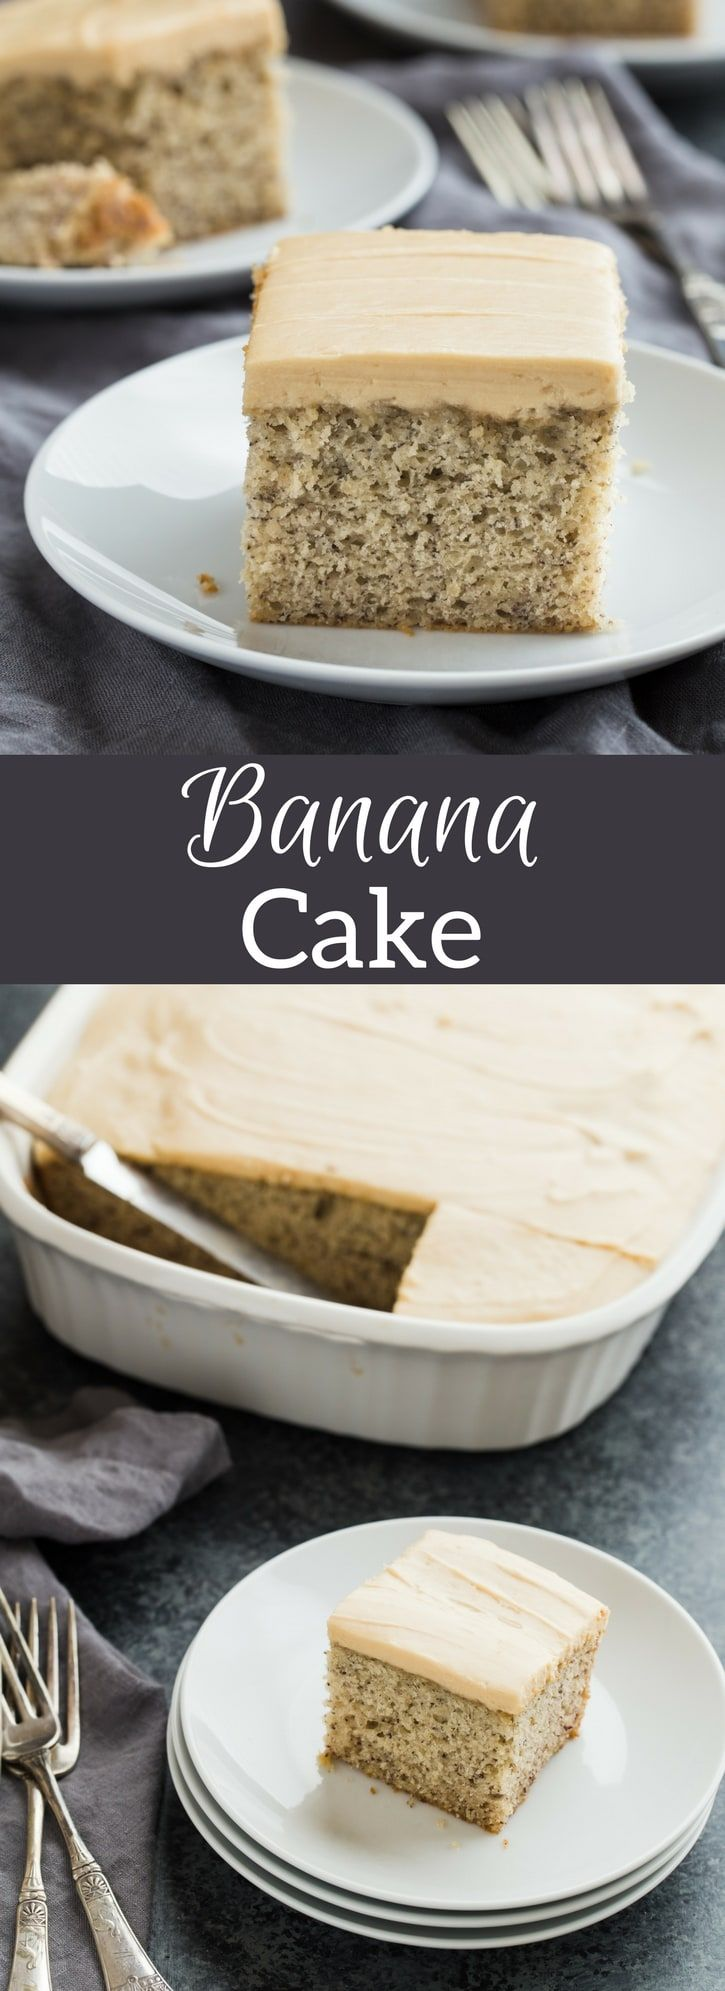 Easy Banana Cake recipe topped with luscious brown sugar frosting. This cake comes together in one bowl and sure to be a crowd pleaser.